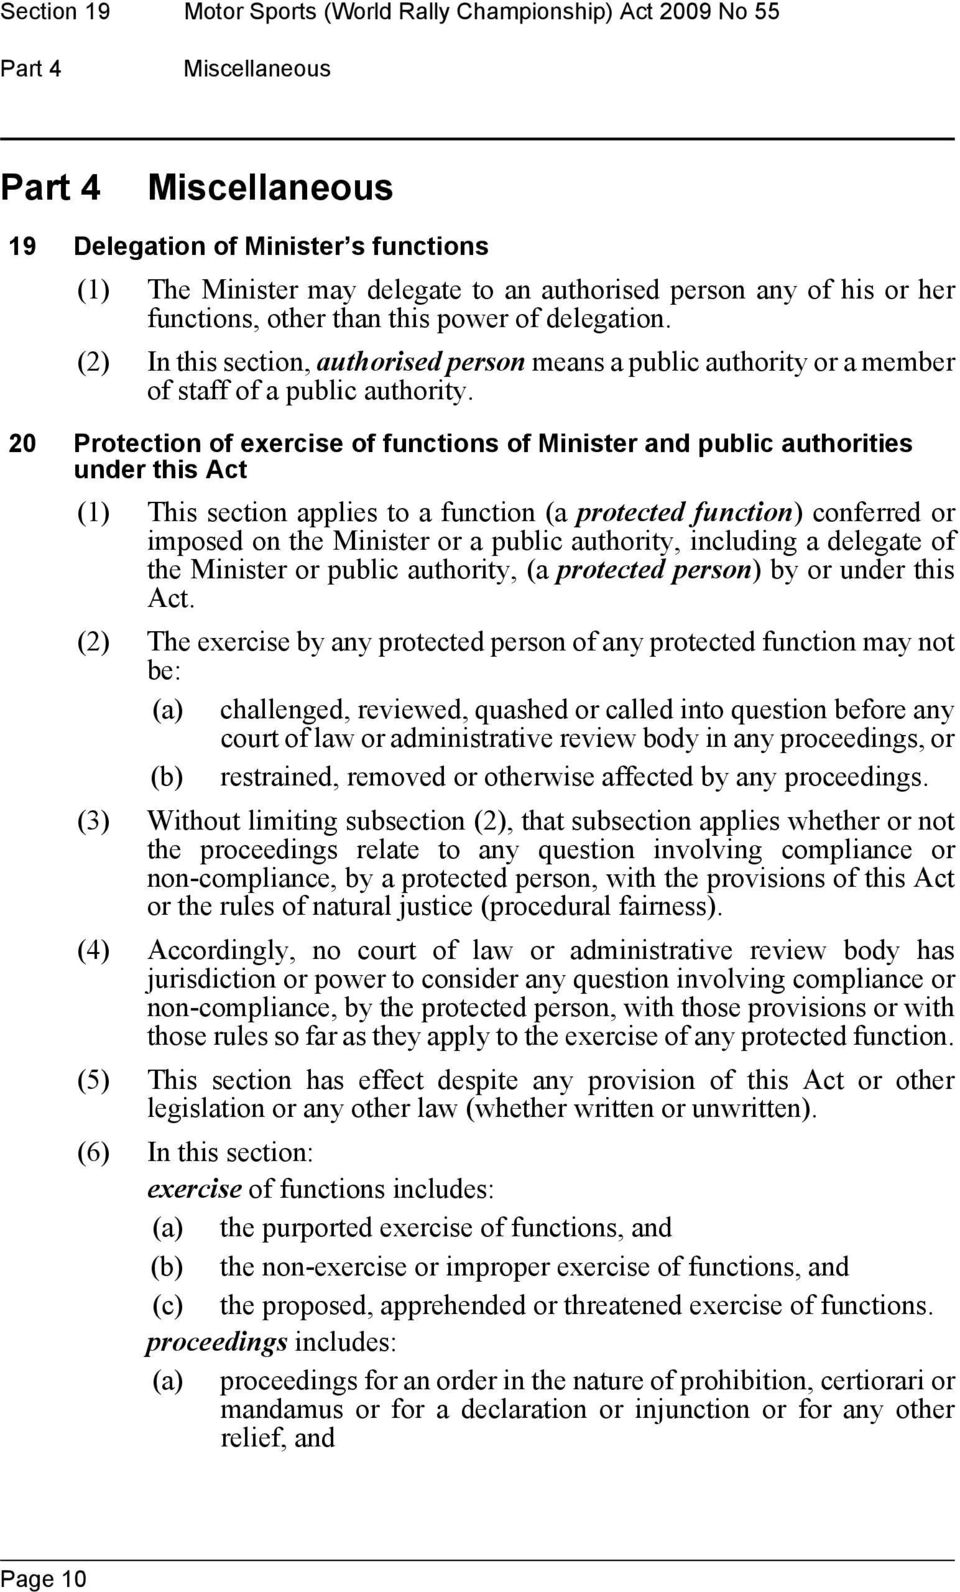 20 Protection of exercise of functions of Minister and public authorities under this Act (1) This section applies to a function (a protected function) conferred or imposed on the Minister or a public